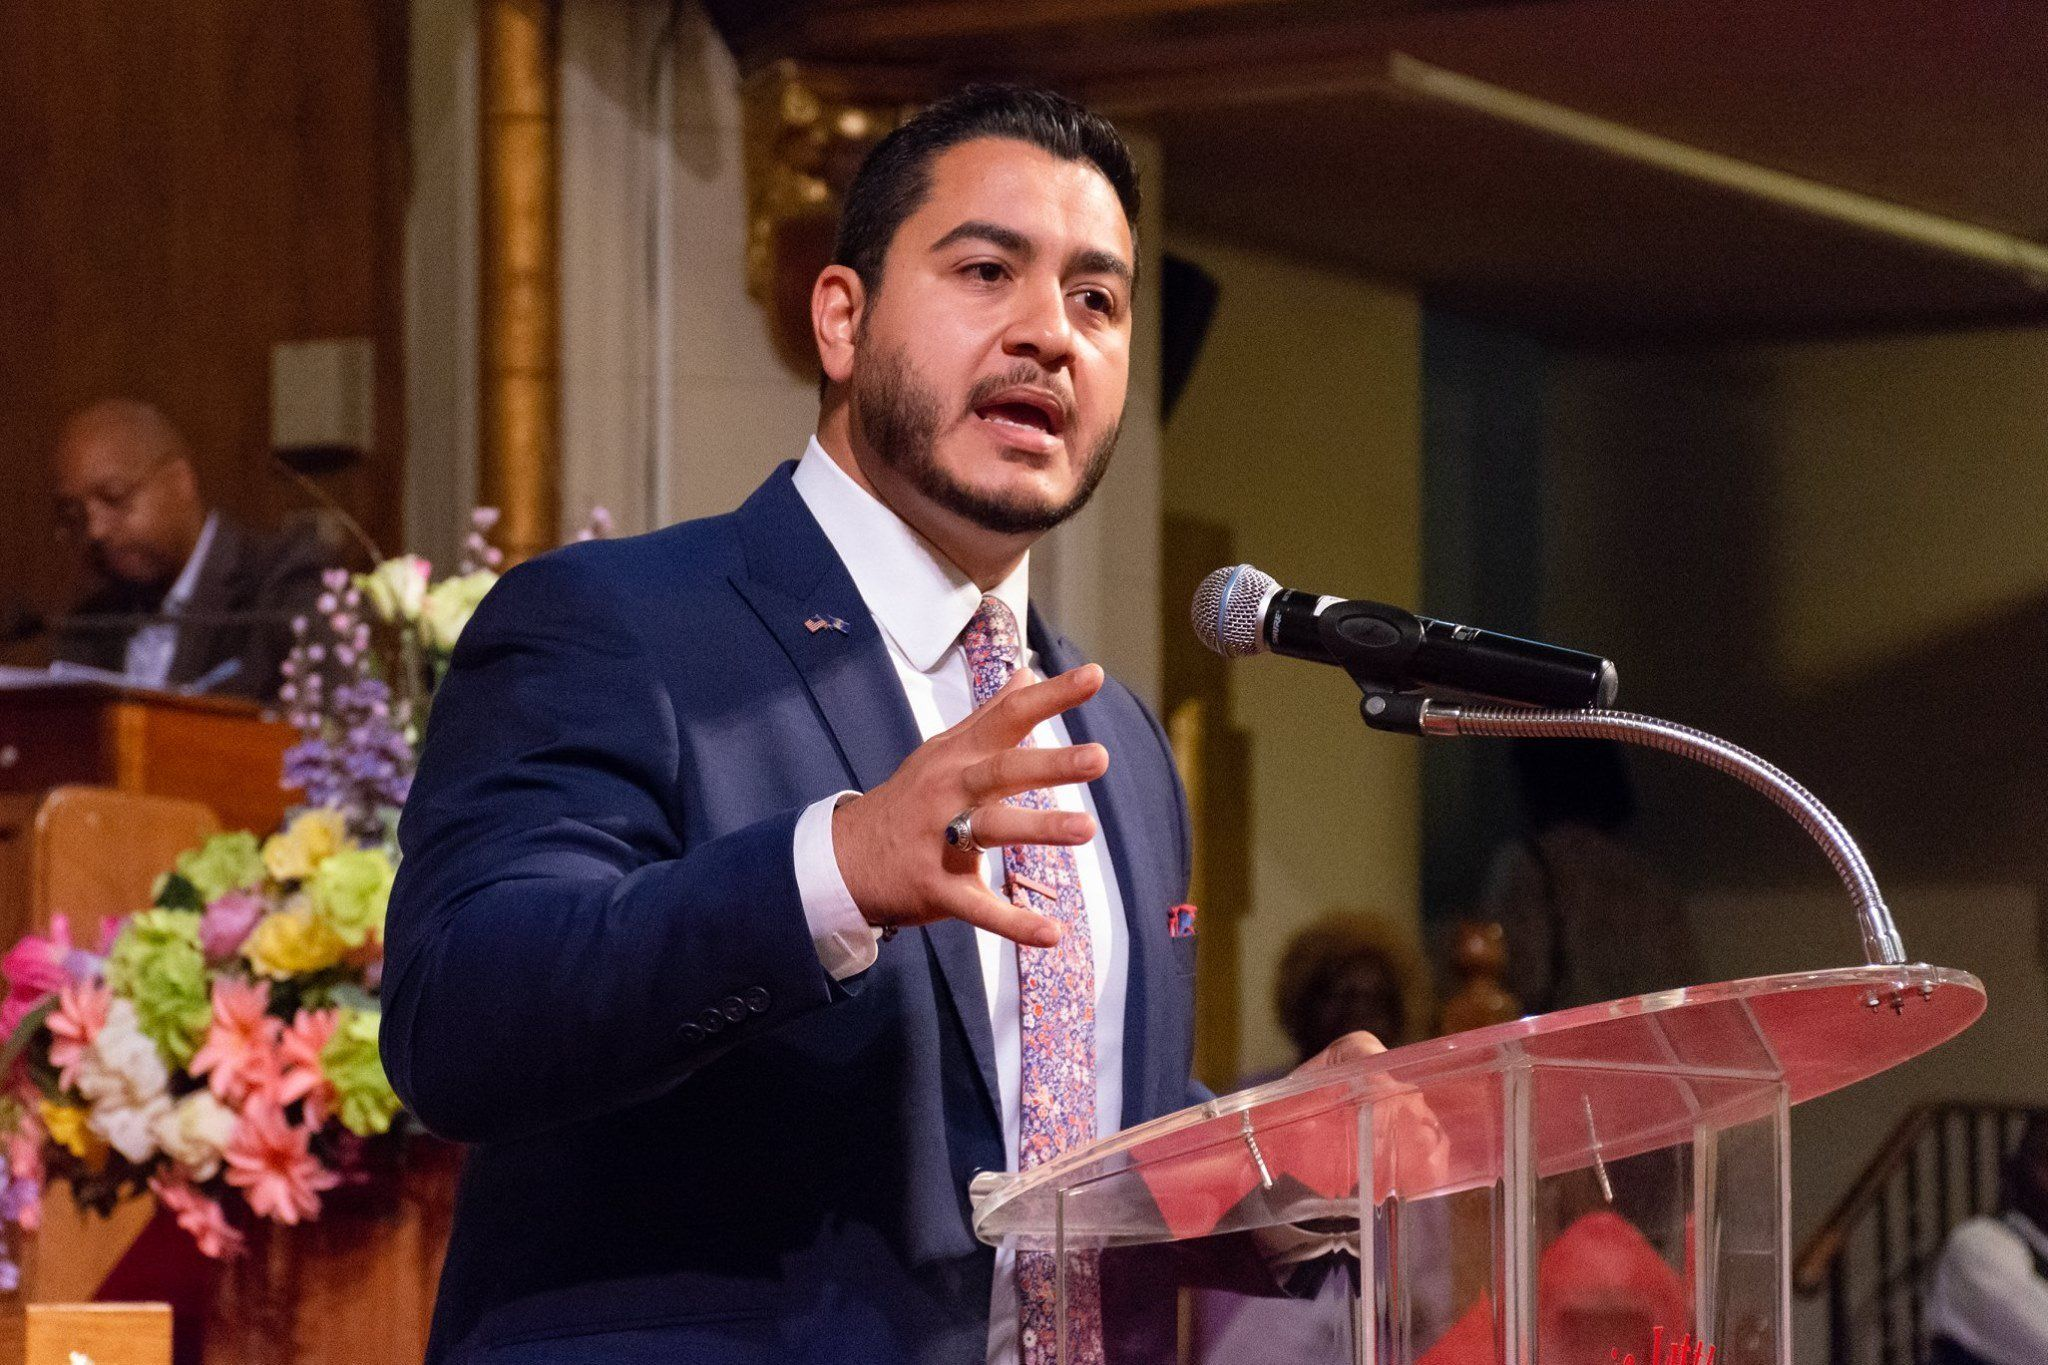 Democrat Abdul El-Sayed the former Detroit health commissioner is running a progressive bid for governor of Michigan